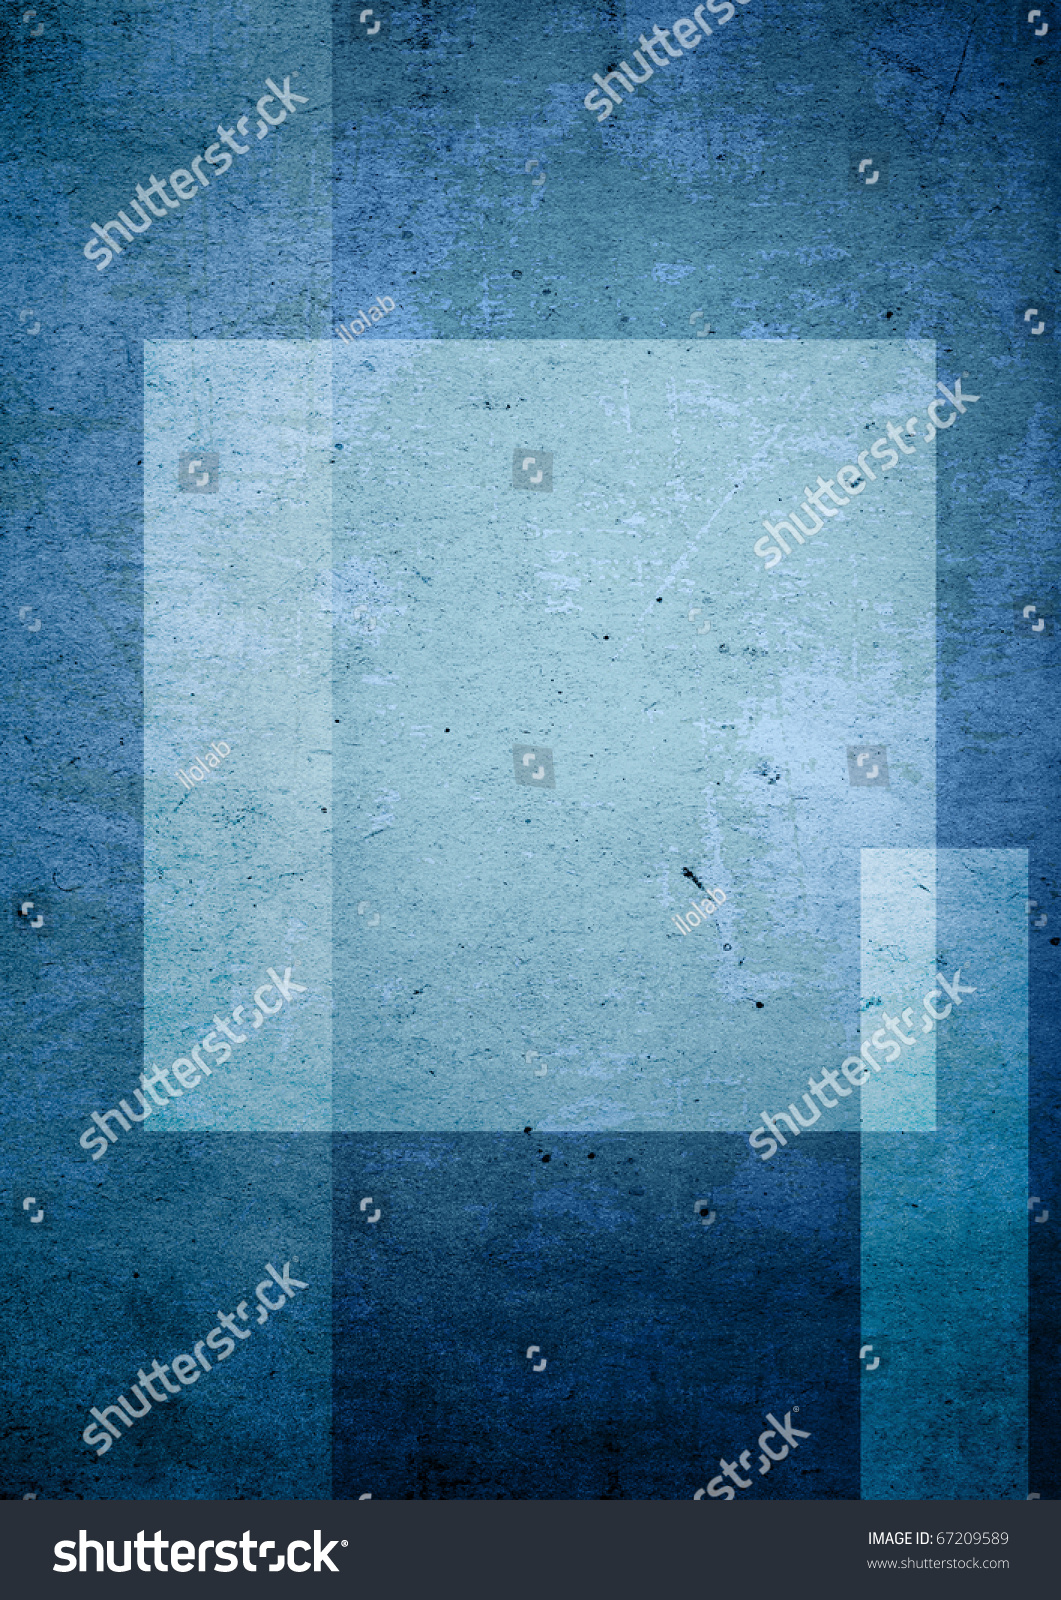 Book Covers Background : Creative backgrounds book cover space name stock